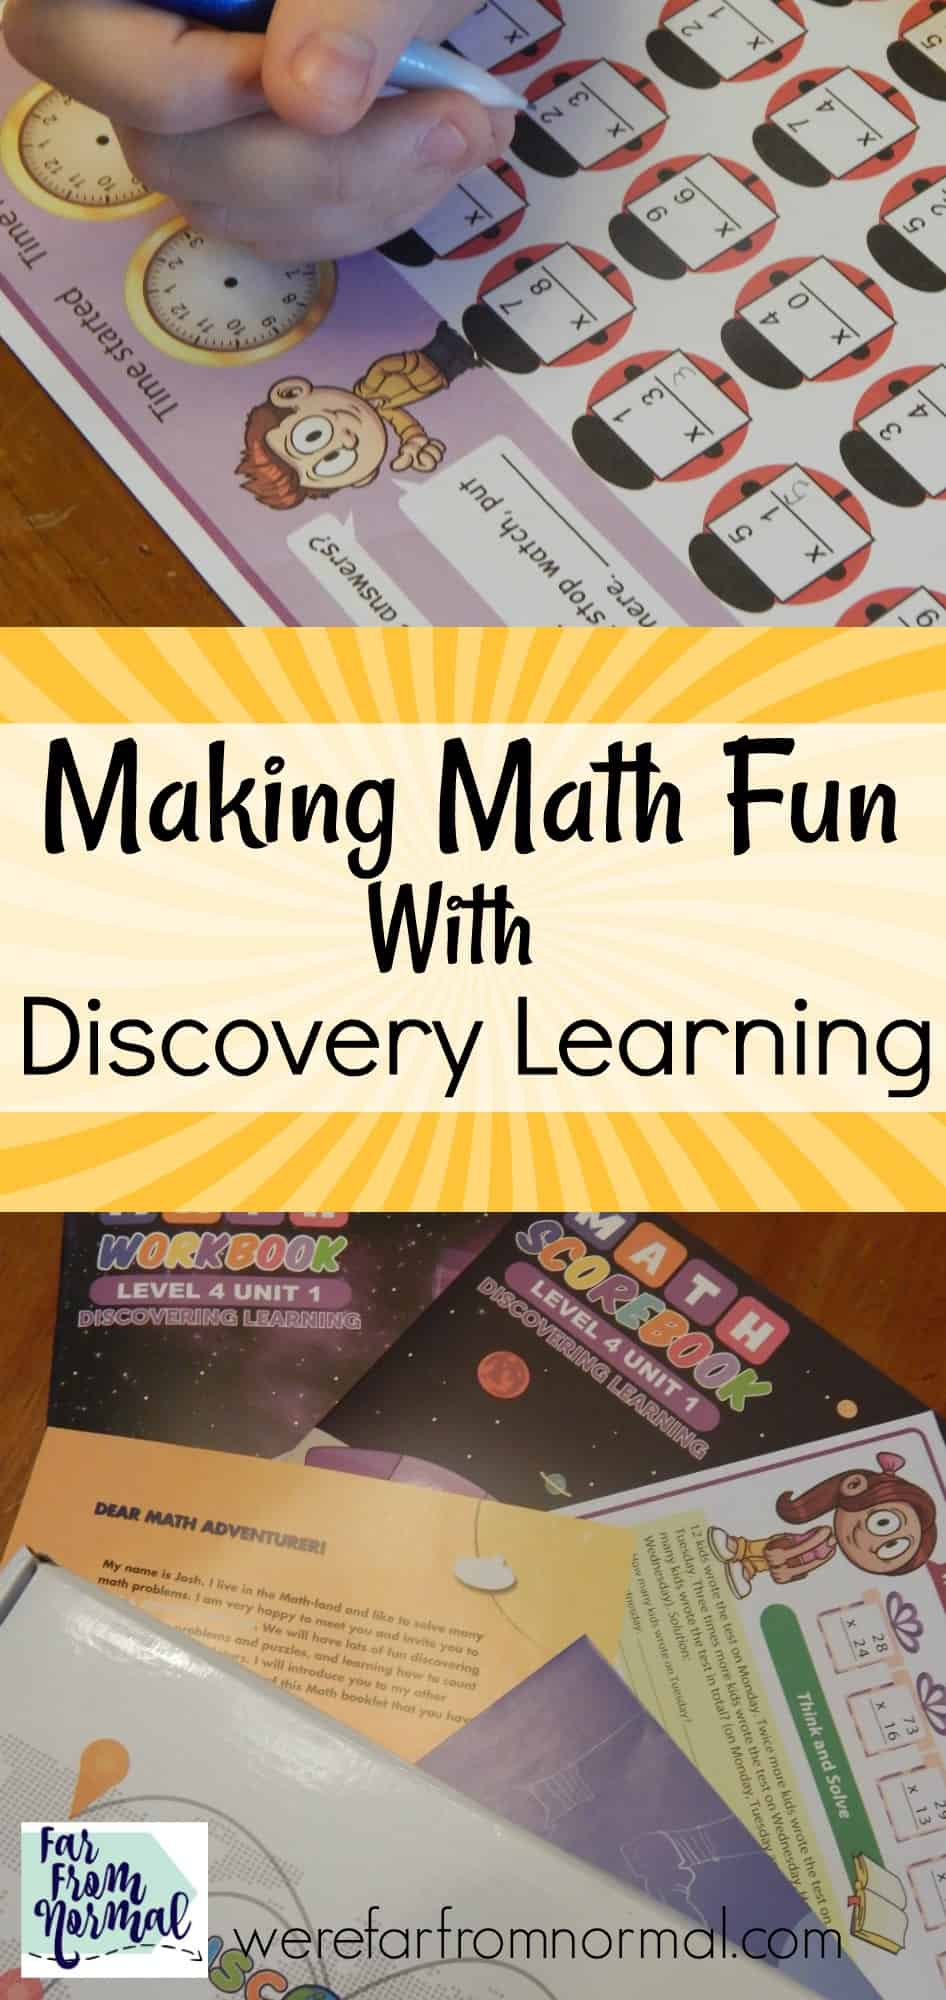 Making Math Fun With Discovery Learning